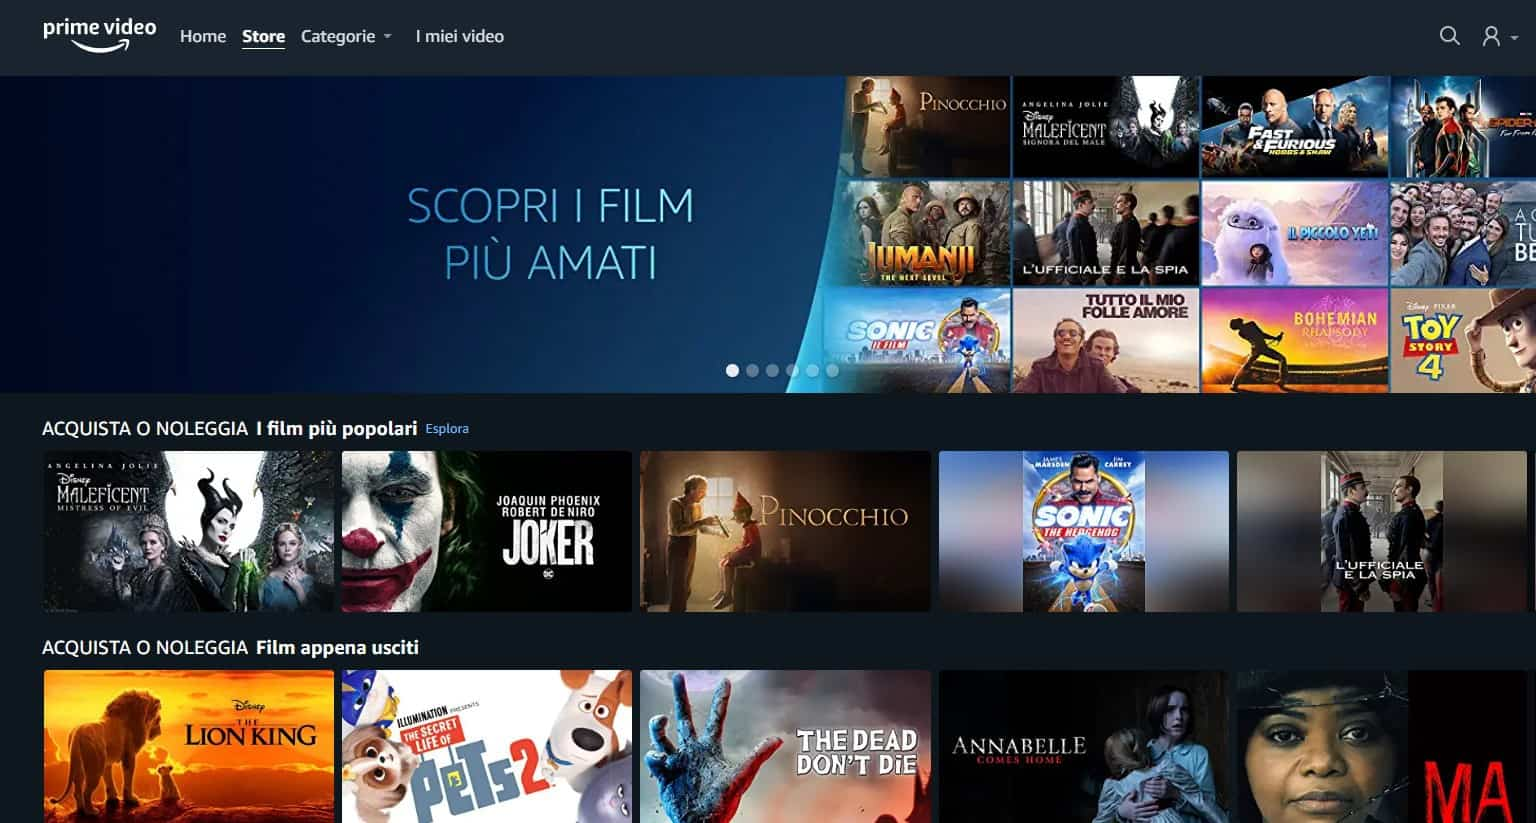 Prime Video Store: disponibile il noleggio dei film su Amazon Prime Video